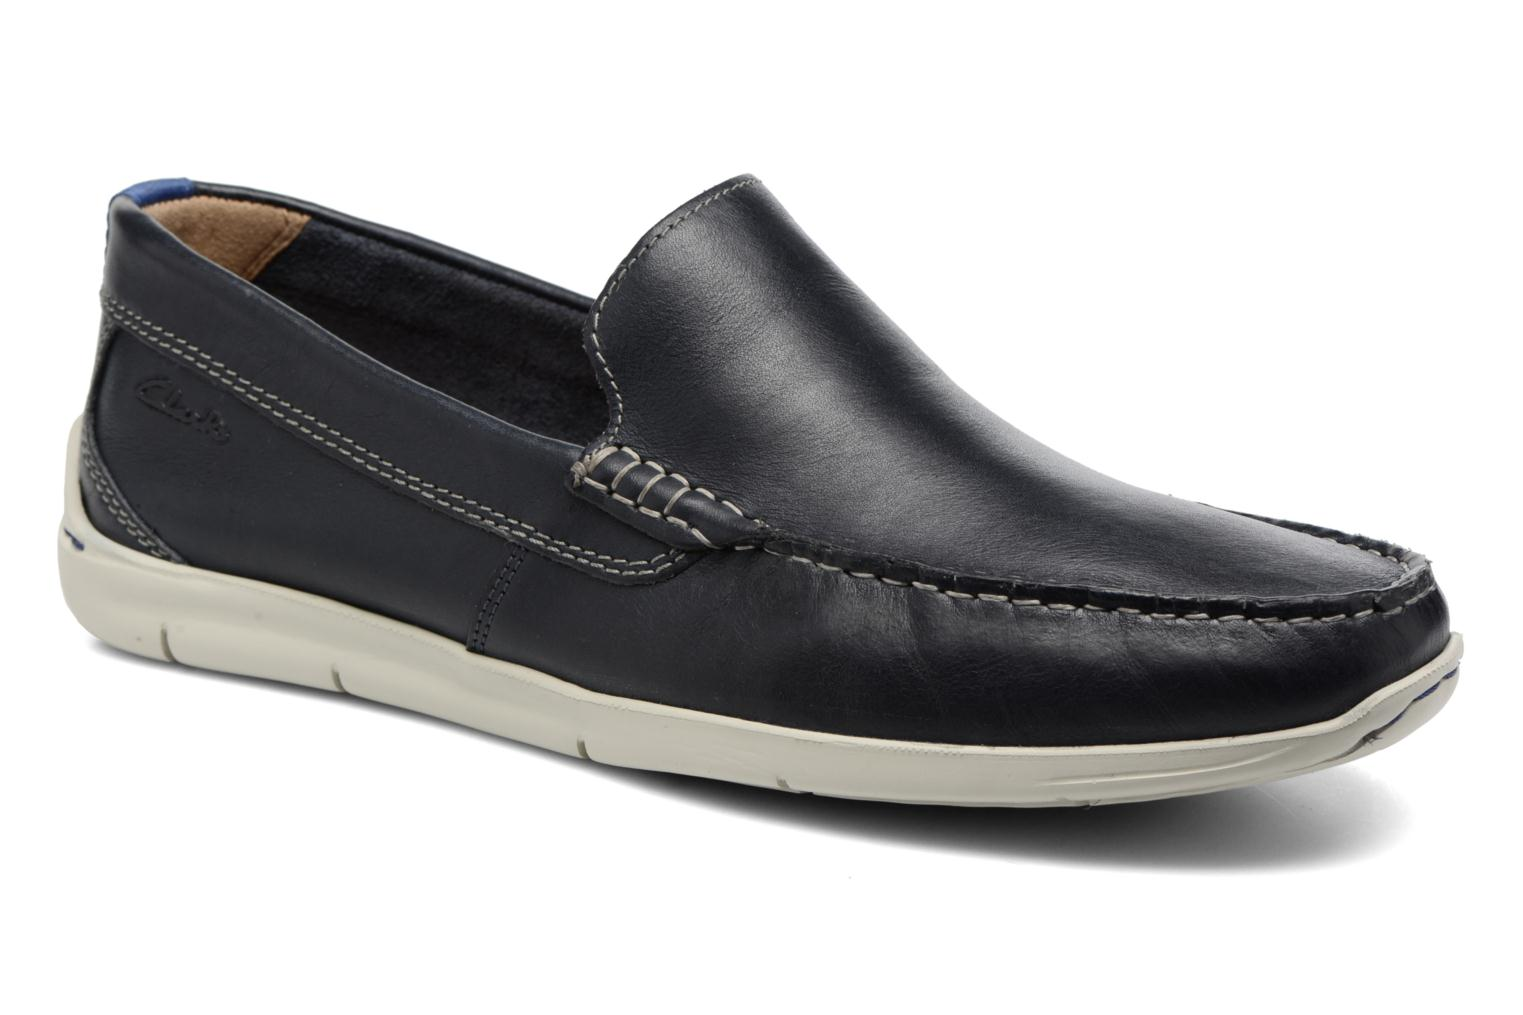 Karlock Lane Navy leather